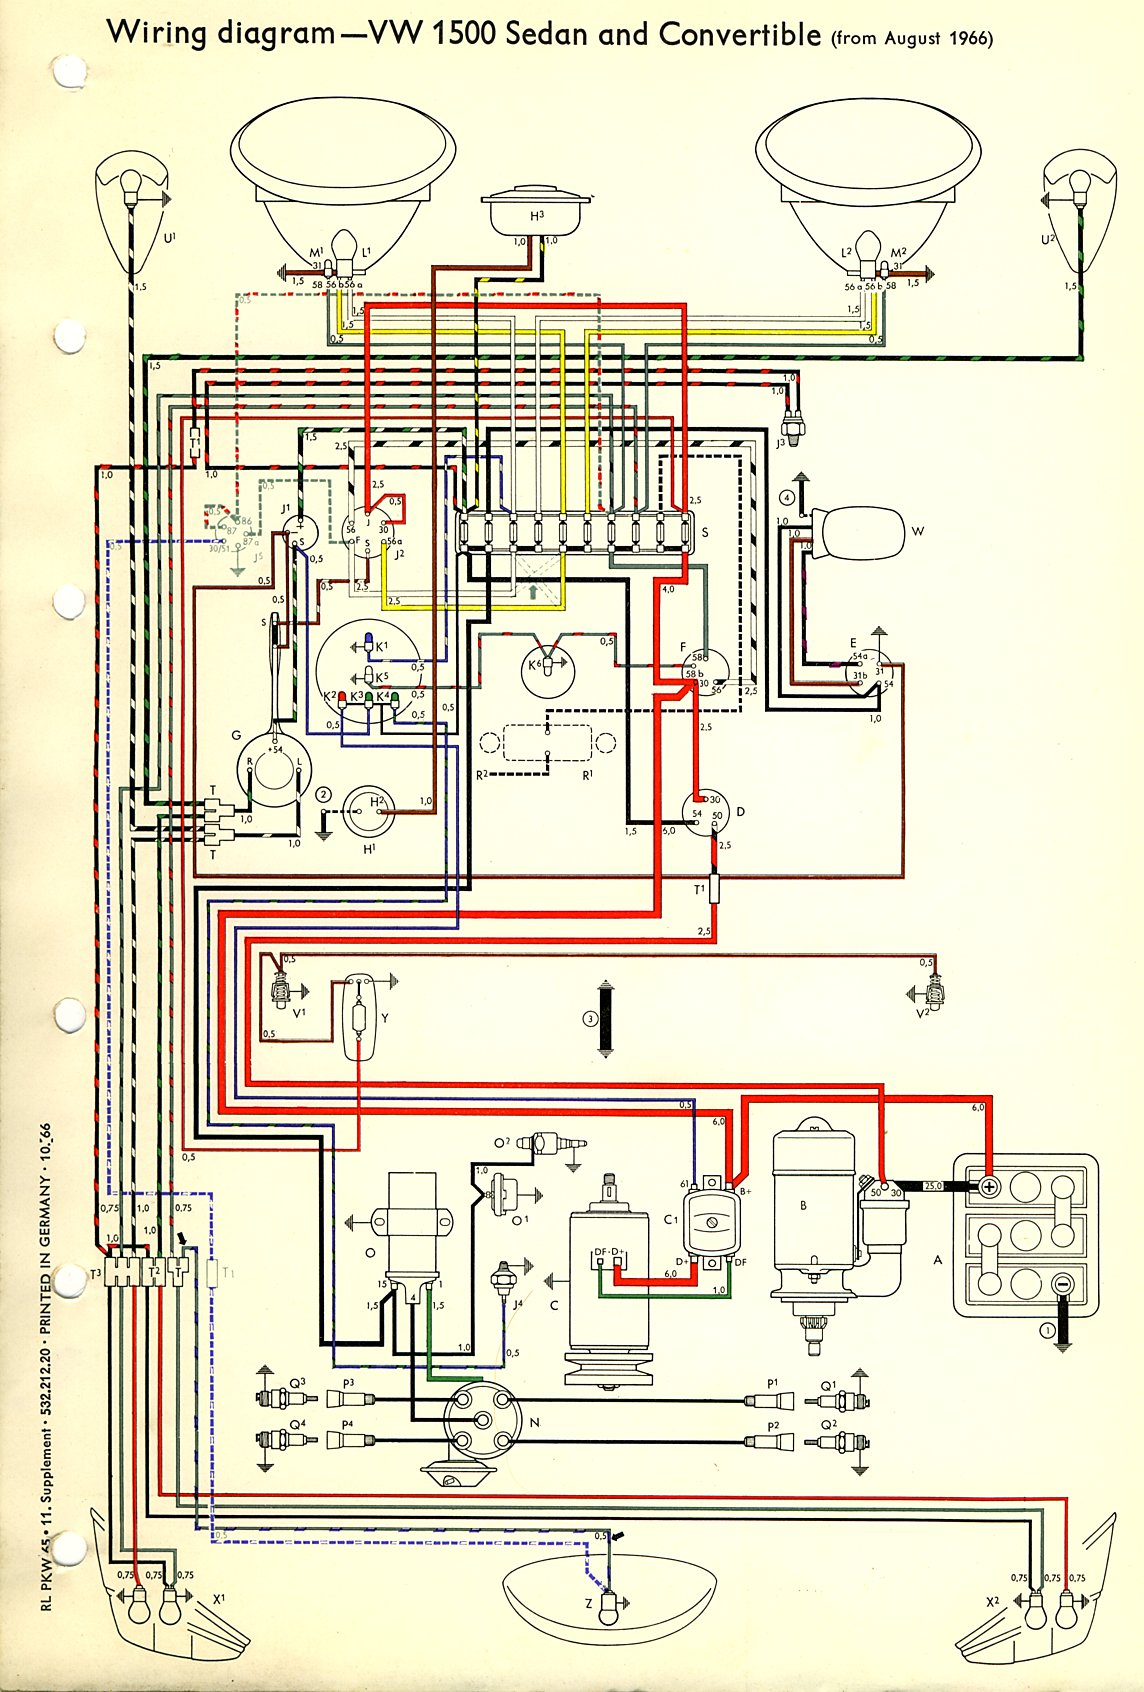 1974 vw beetle wiring diagram view diagram wire center u2022 rh linxglobal co vw 2006 beetle radio wiring diagrams 2006 vw new beetle wiring diagram